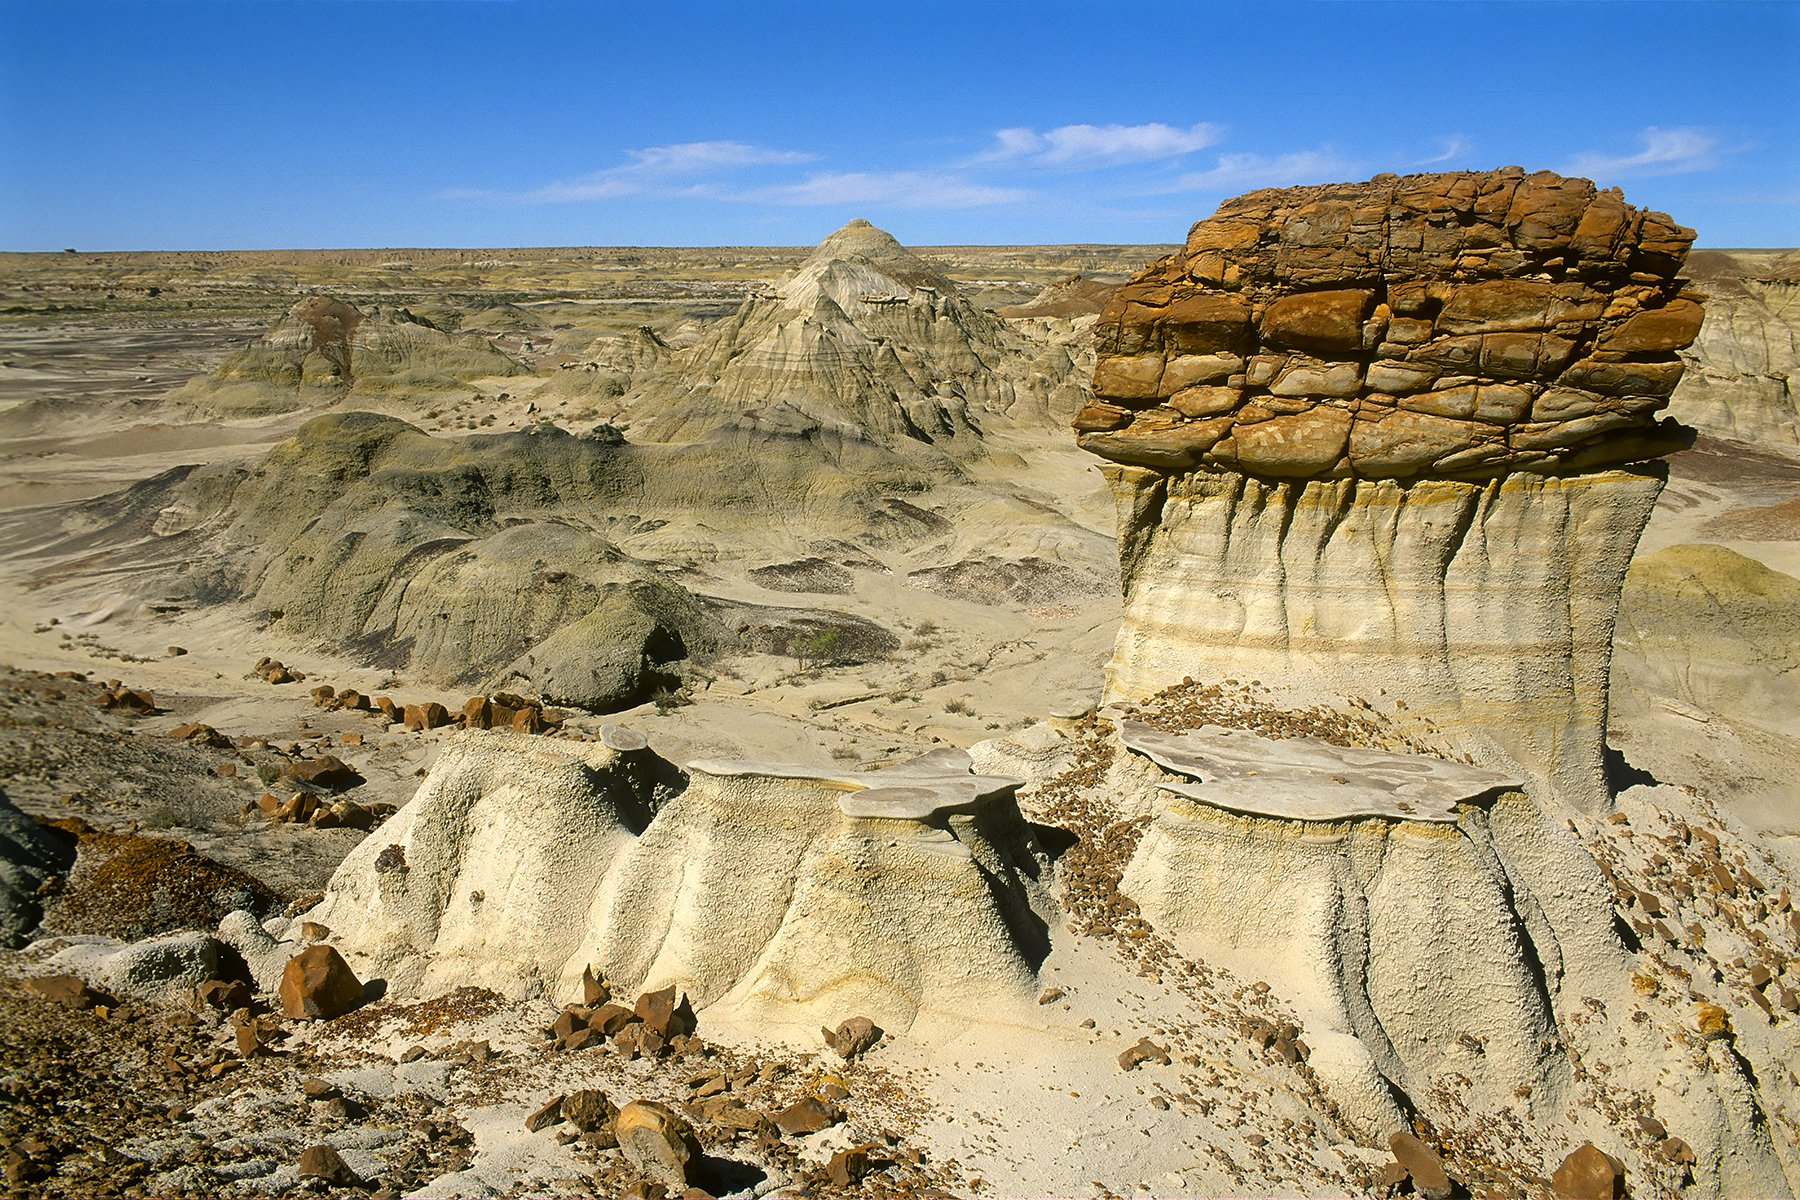 Bisti/De-Na-Zin Wilderness, New Mexico (2016)